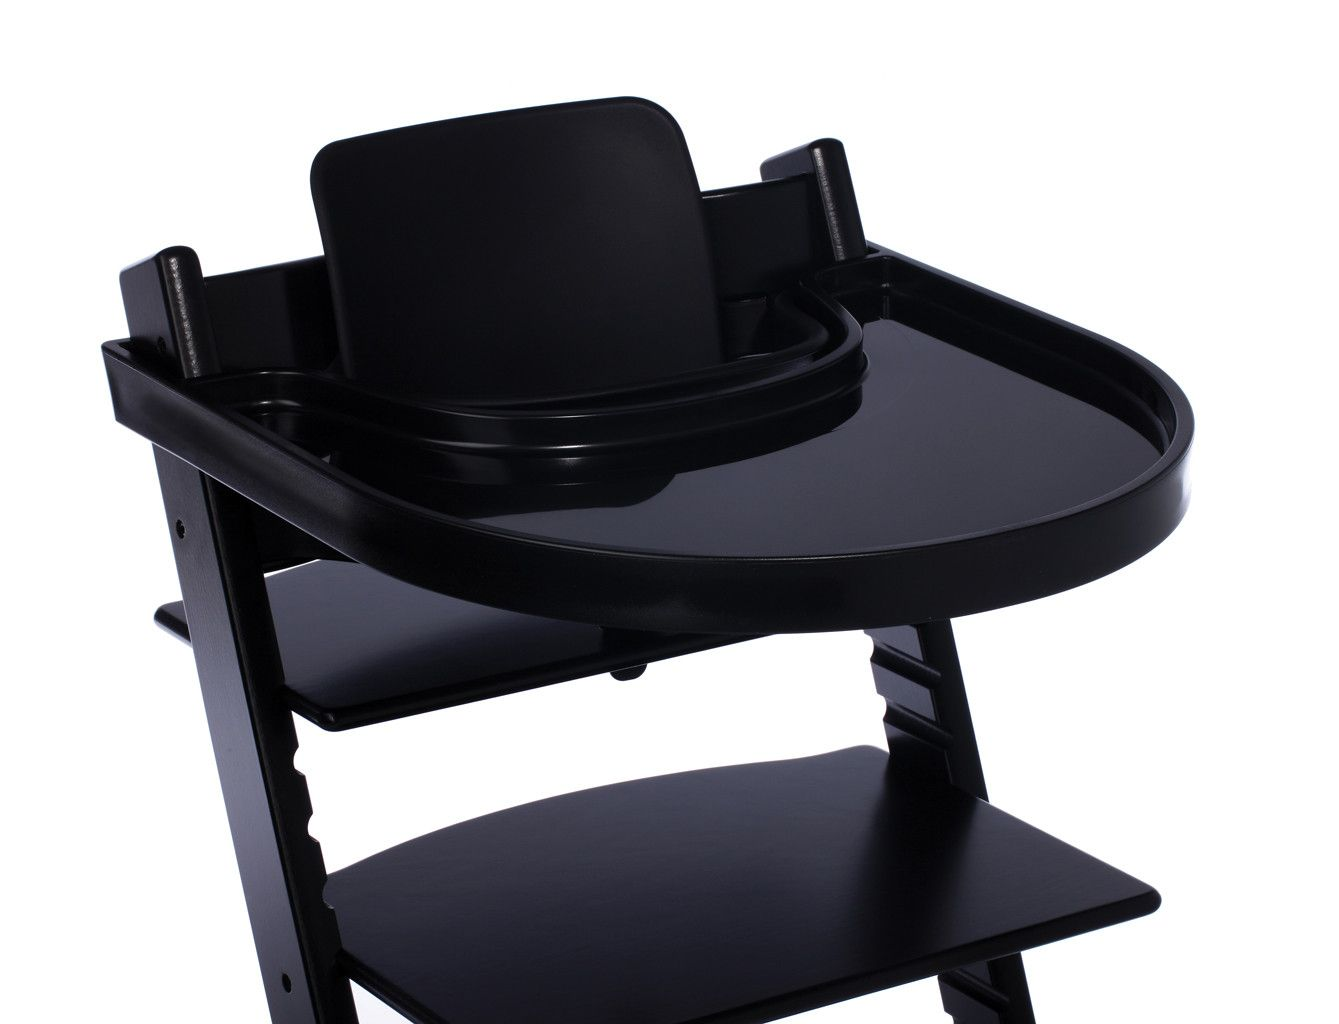 trip trap chair sale latest stokke high chair sale with. Black Bedroom Furniture Sets. Home Design Ideas